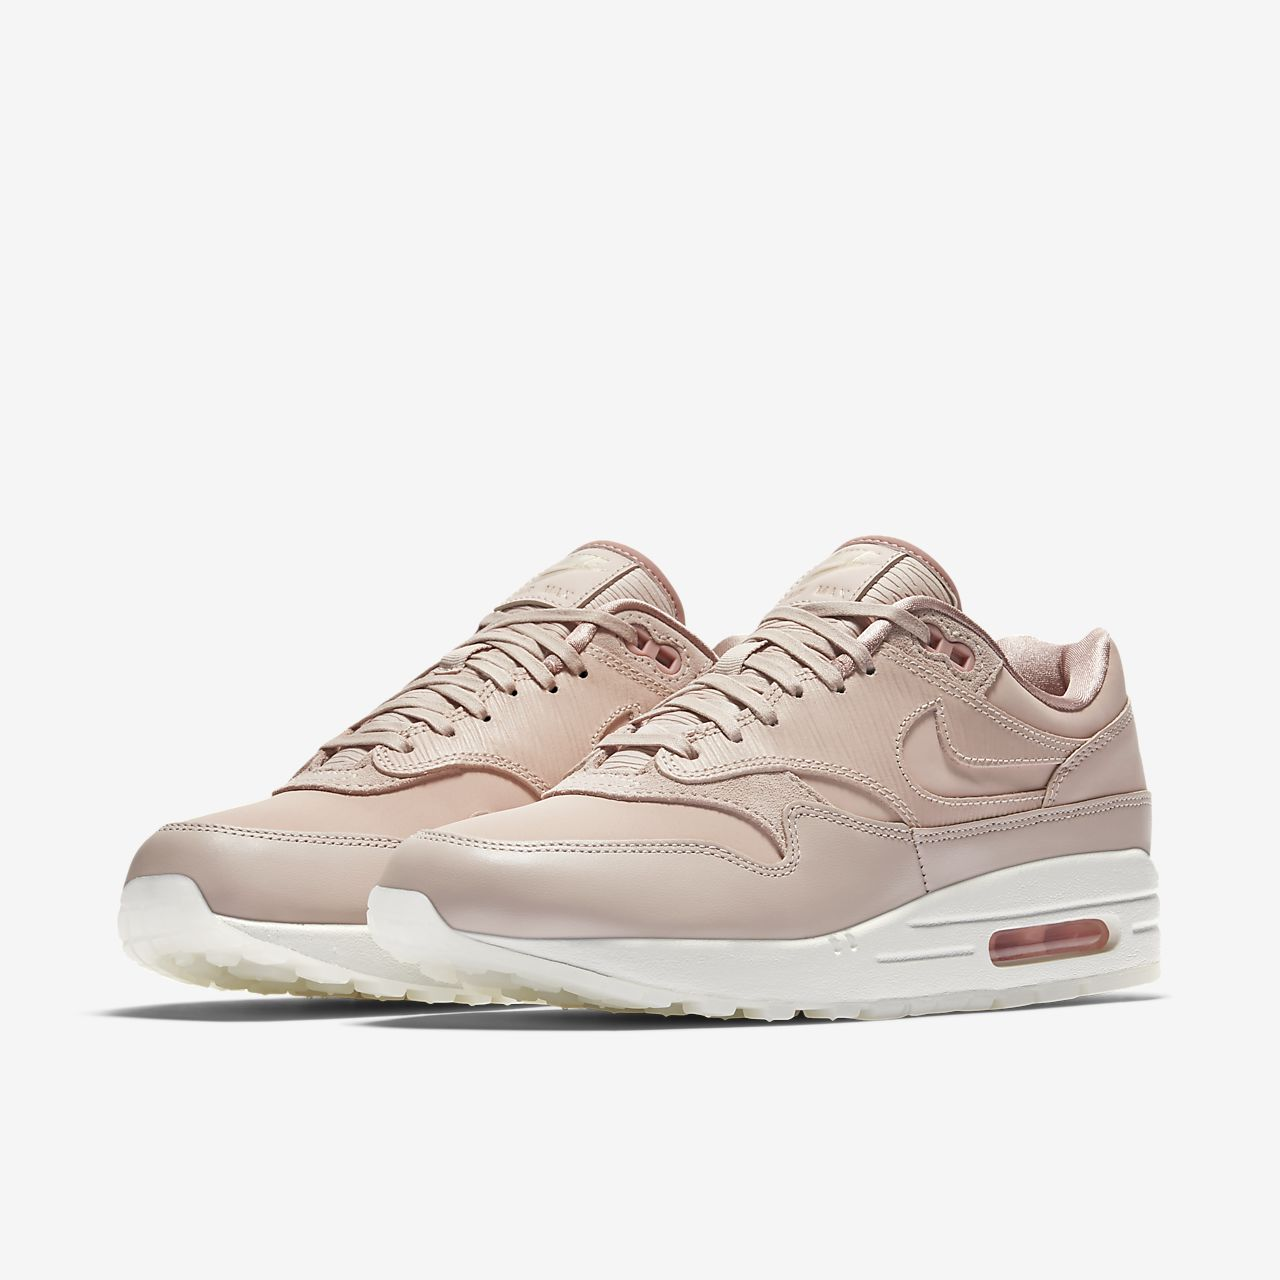 ... Nike Air Max 1 Premium Women's Shoe